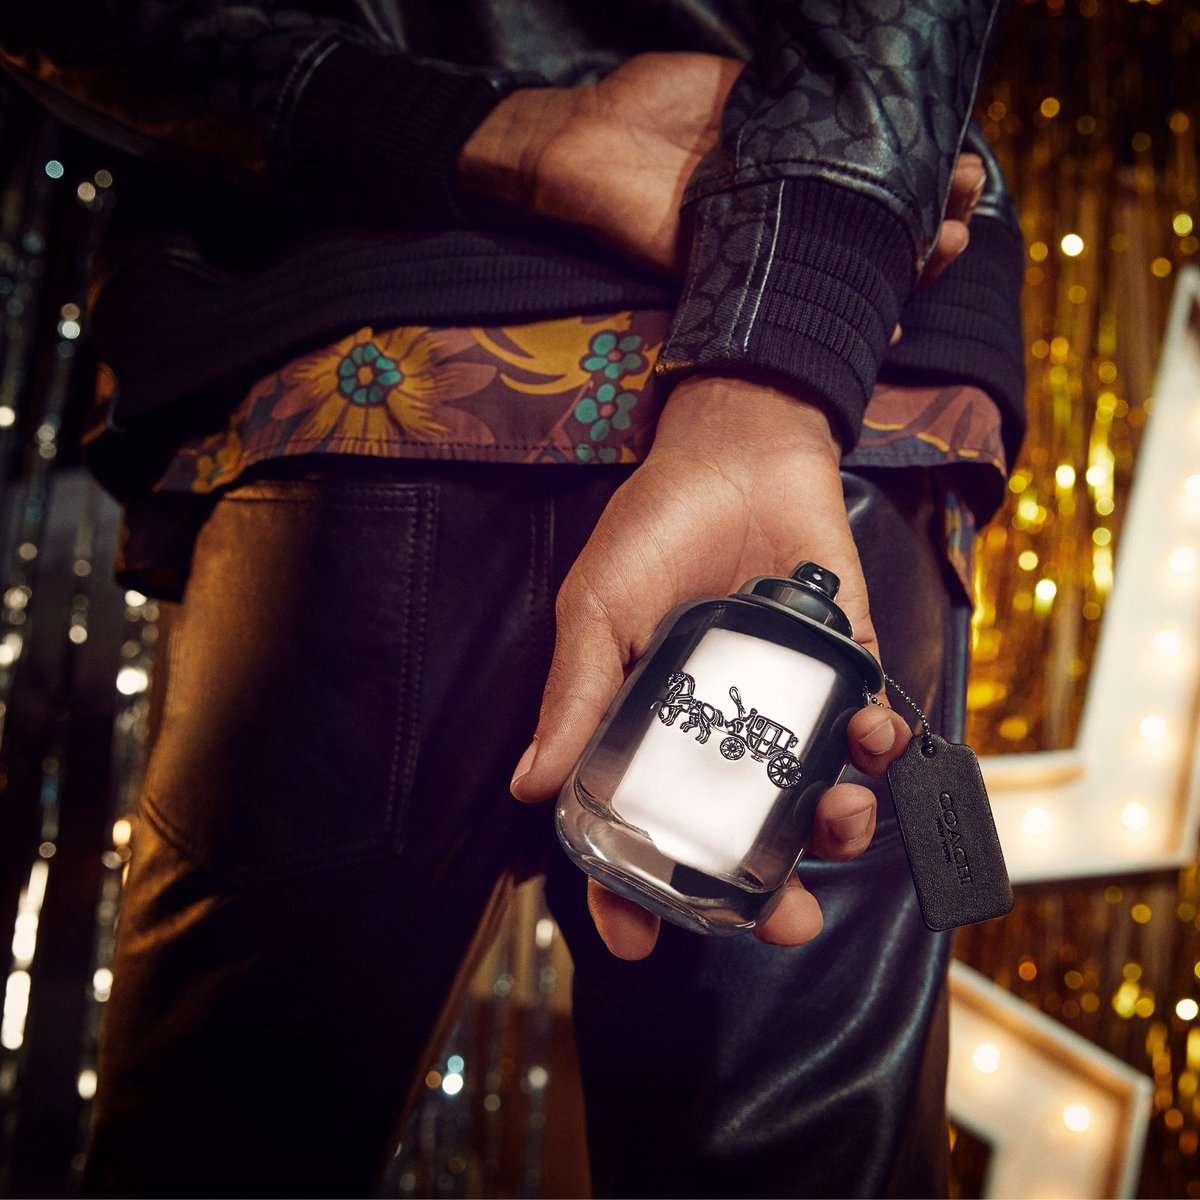 Coach Holiday goes Platinum with our new fragrance for him. #LightsCameraHoliday #CoachPlatinum #CoachNY  http://on.coach.com/ShopPlatinum